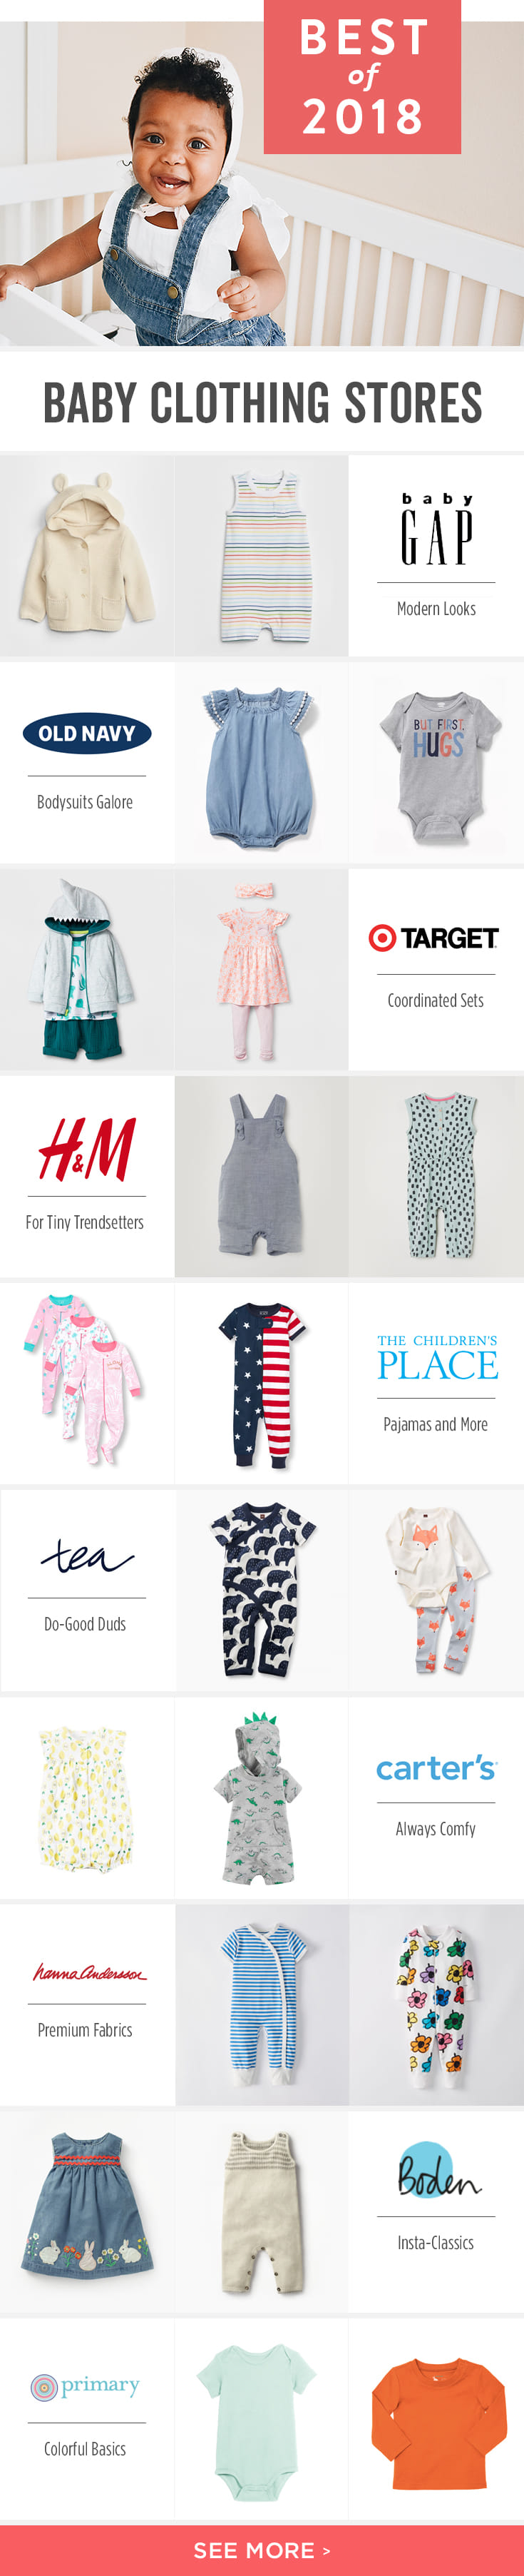 9219c7d52f46 Babylist is the baby registry that lets you add any item from any store  including the Best Baby Clothing ...